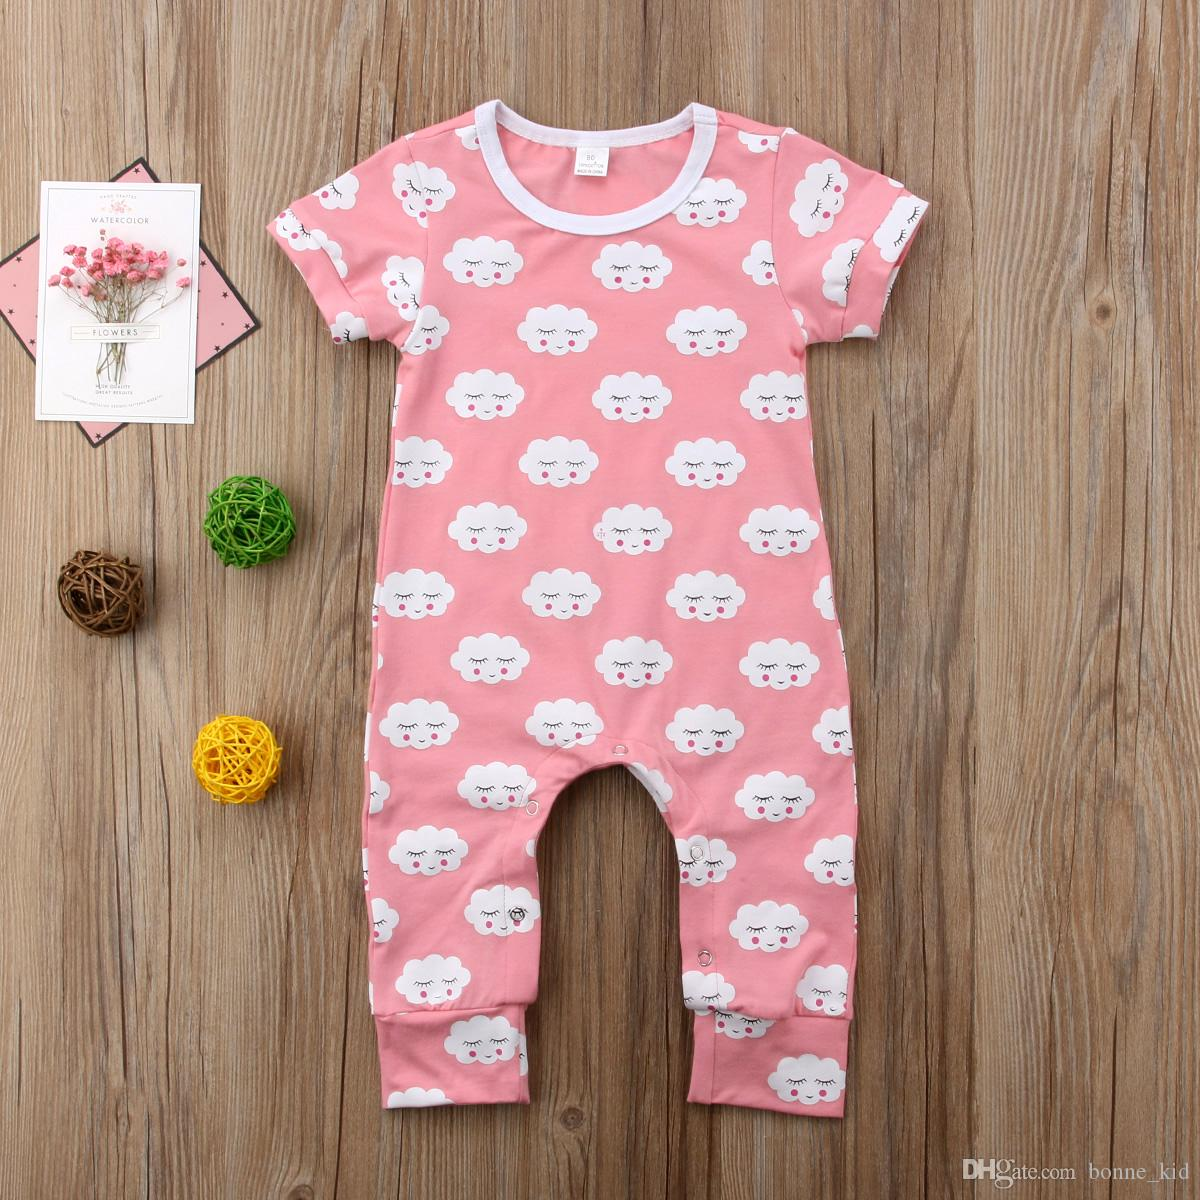 8a758f04e1a2 2019 Geometric Cloud Pink Romper Newborn Infant Baby Girls Short ...